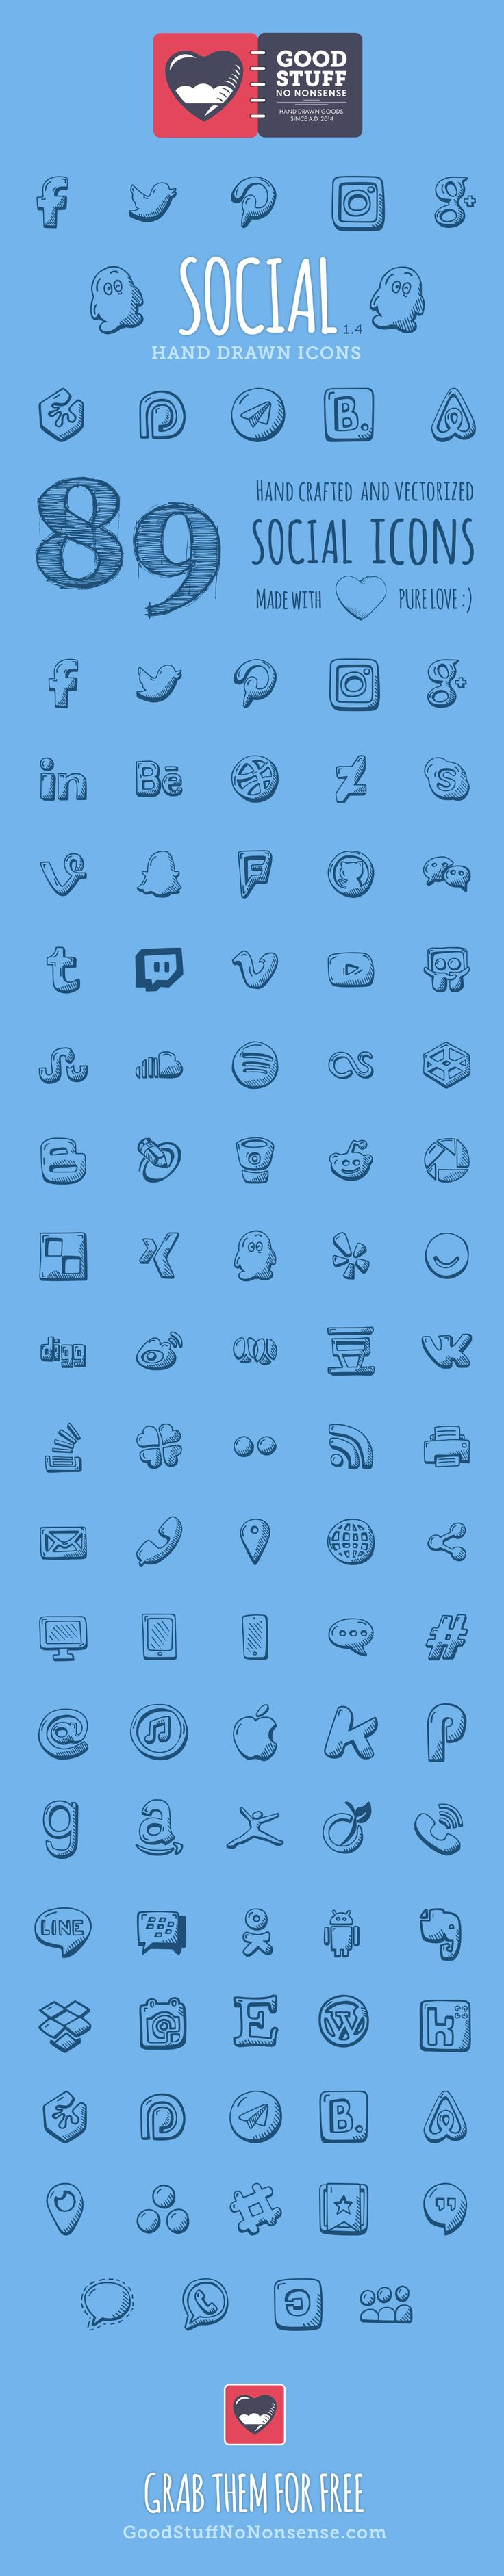 Social Media Icons made by @weboutloud  #icons #HandDrawnIcons #doodle #tinyart #etsy #scrapbooking #socialIcons #socialmediaicons #socialmedia #social #free #freebie